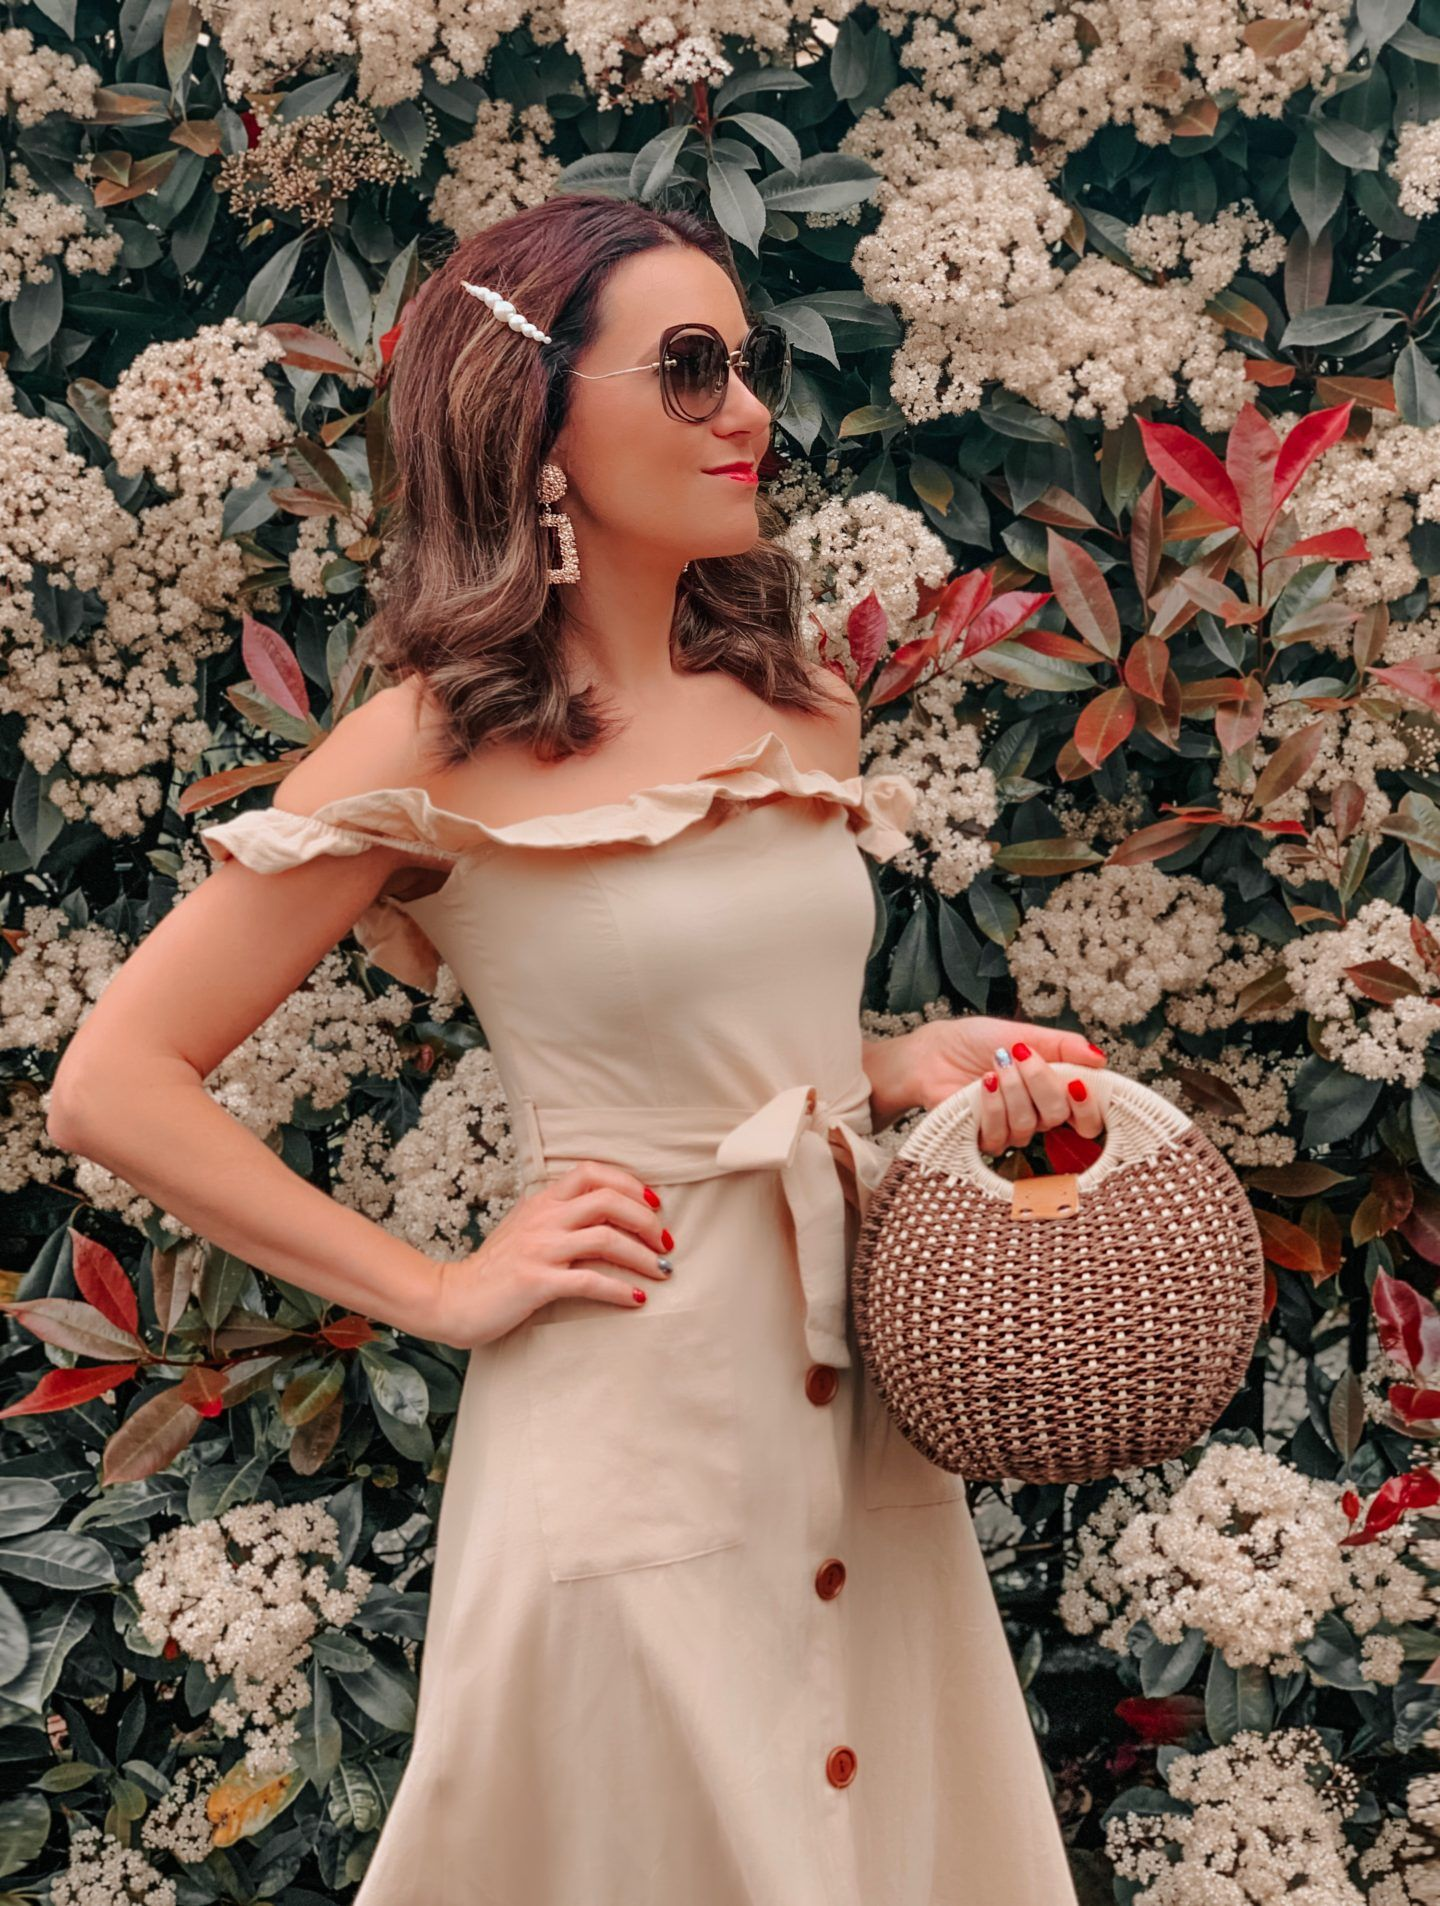 OUTFIT FROM ELEGANT DUCHESS BOUTIQUE Round Summer Beach Straw Bag | Off shoulder ruffle detail midi dress | TEXTURED GEOMETRIC EARRINGS | Pearl Hair Clip | MIU MIU SUNGLASSES